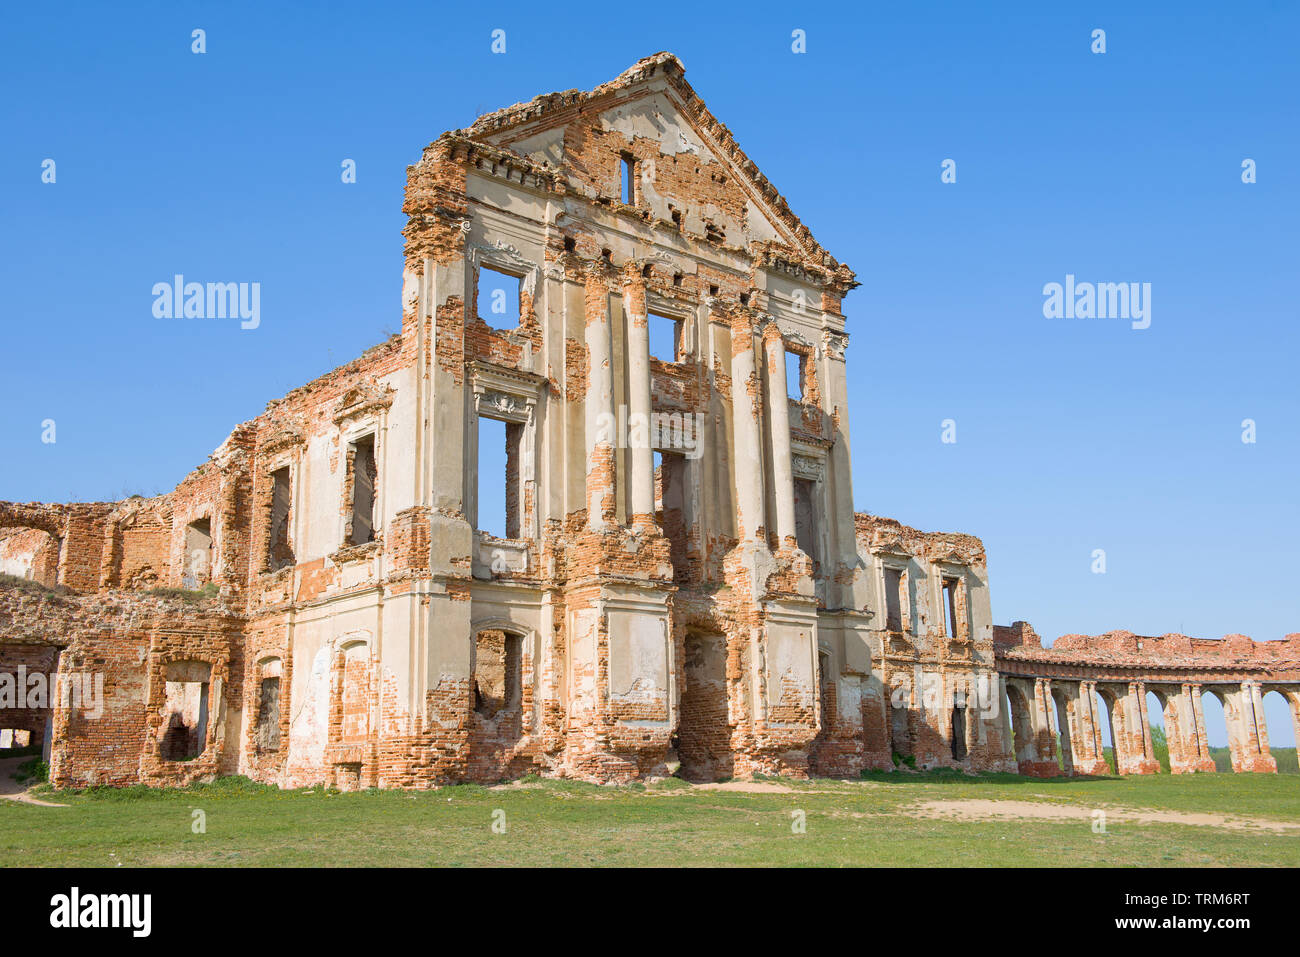 The ruins of the central building of the ancient palace of the princes Sapeg close-up. Ruzhany, Belarus - Stock Image